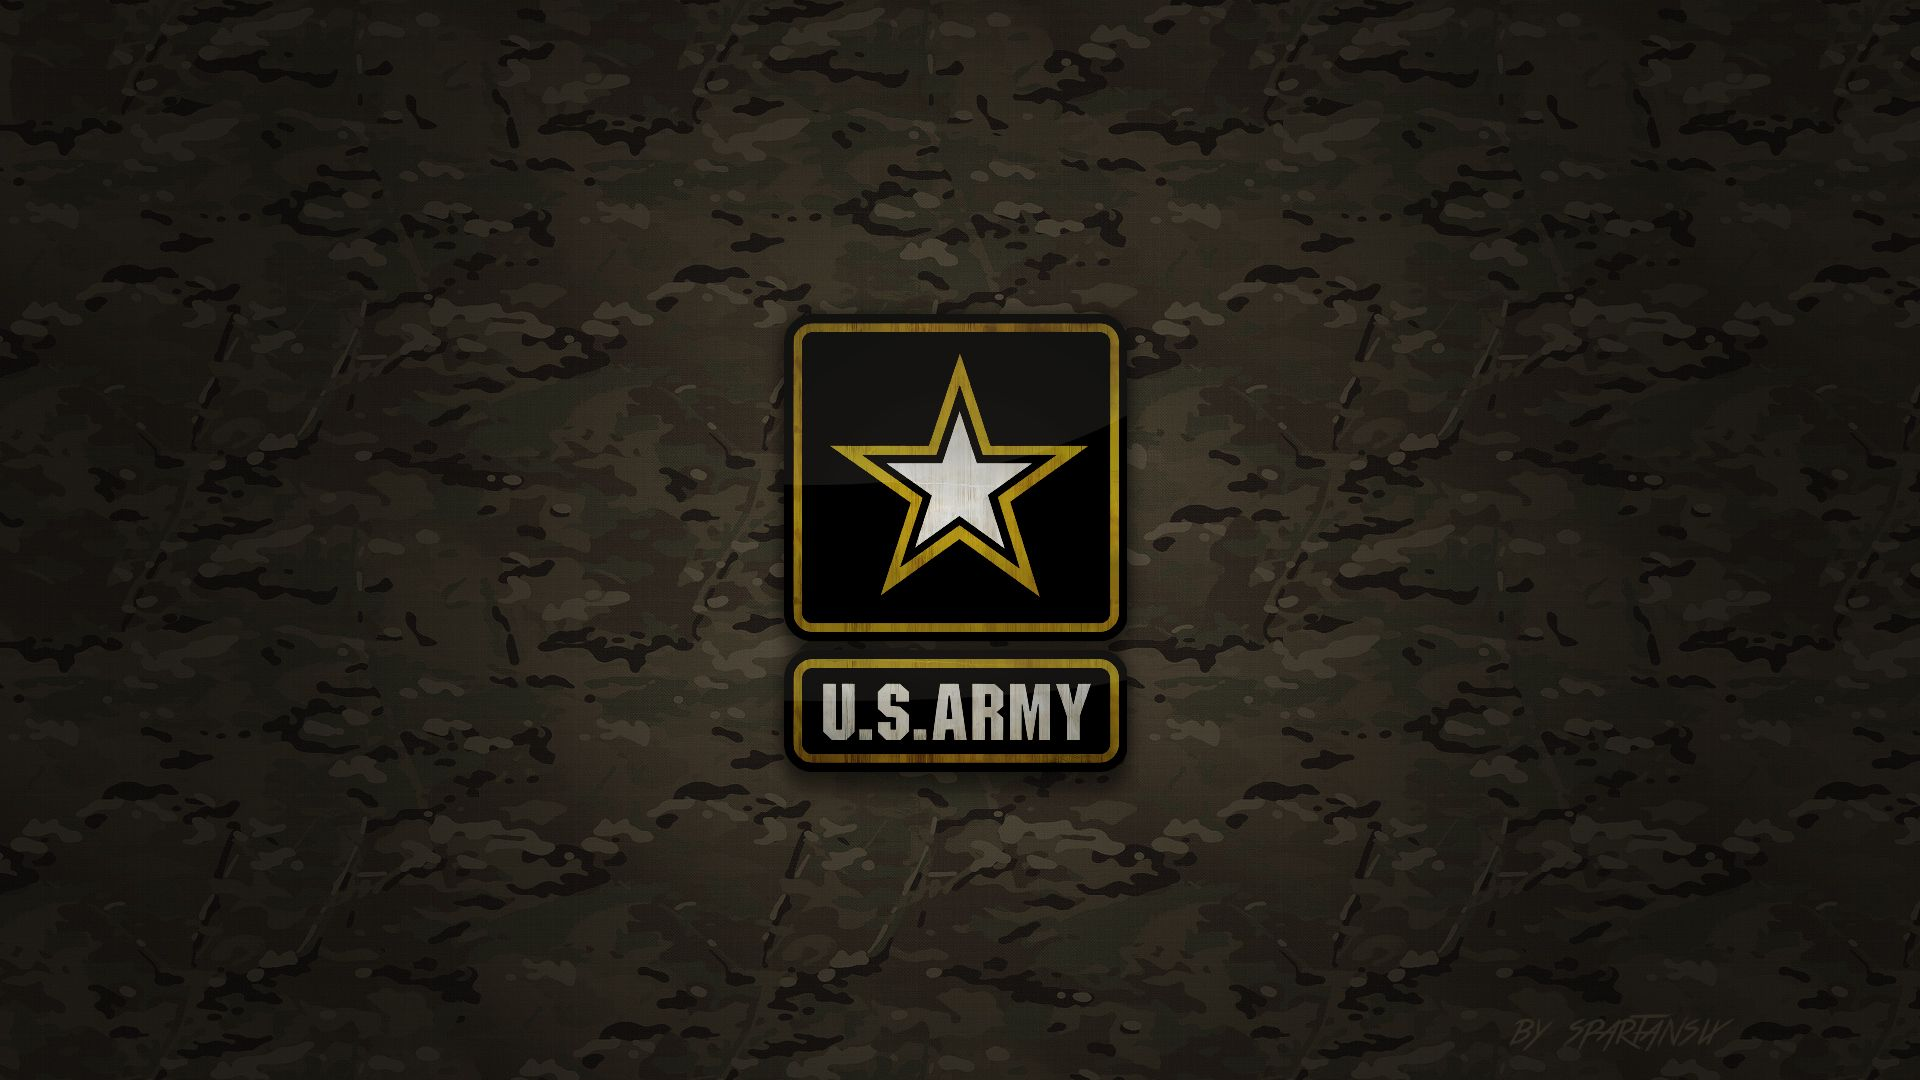 1920x1080 army logo wallpaper Group with 50 items